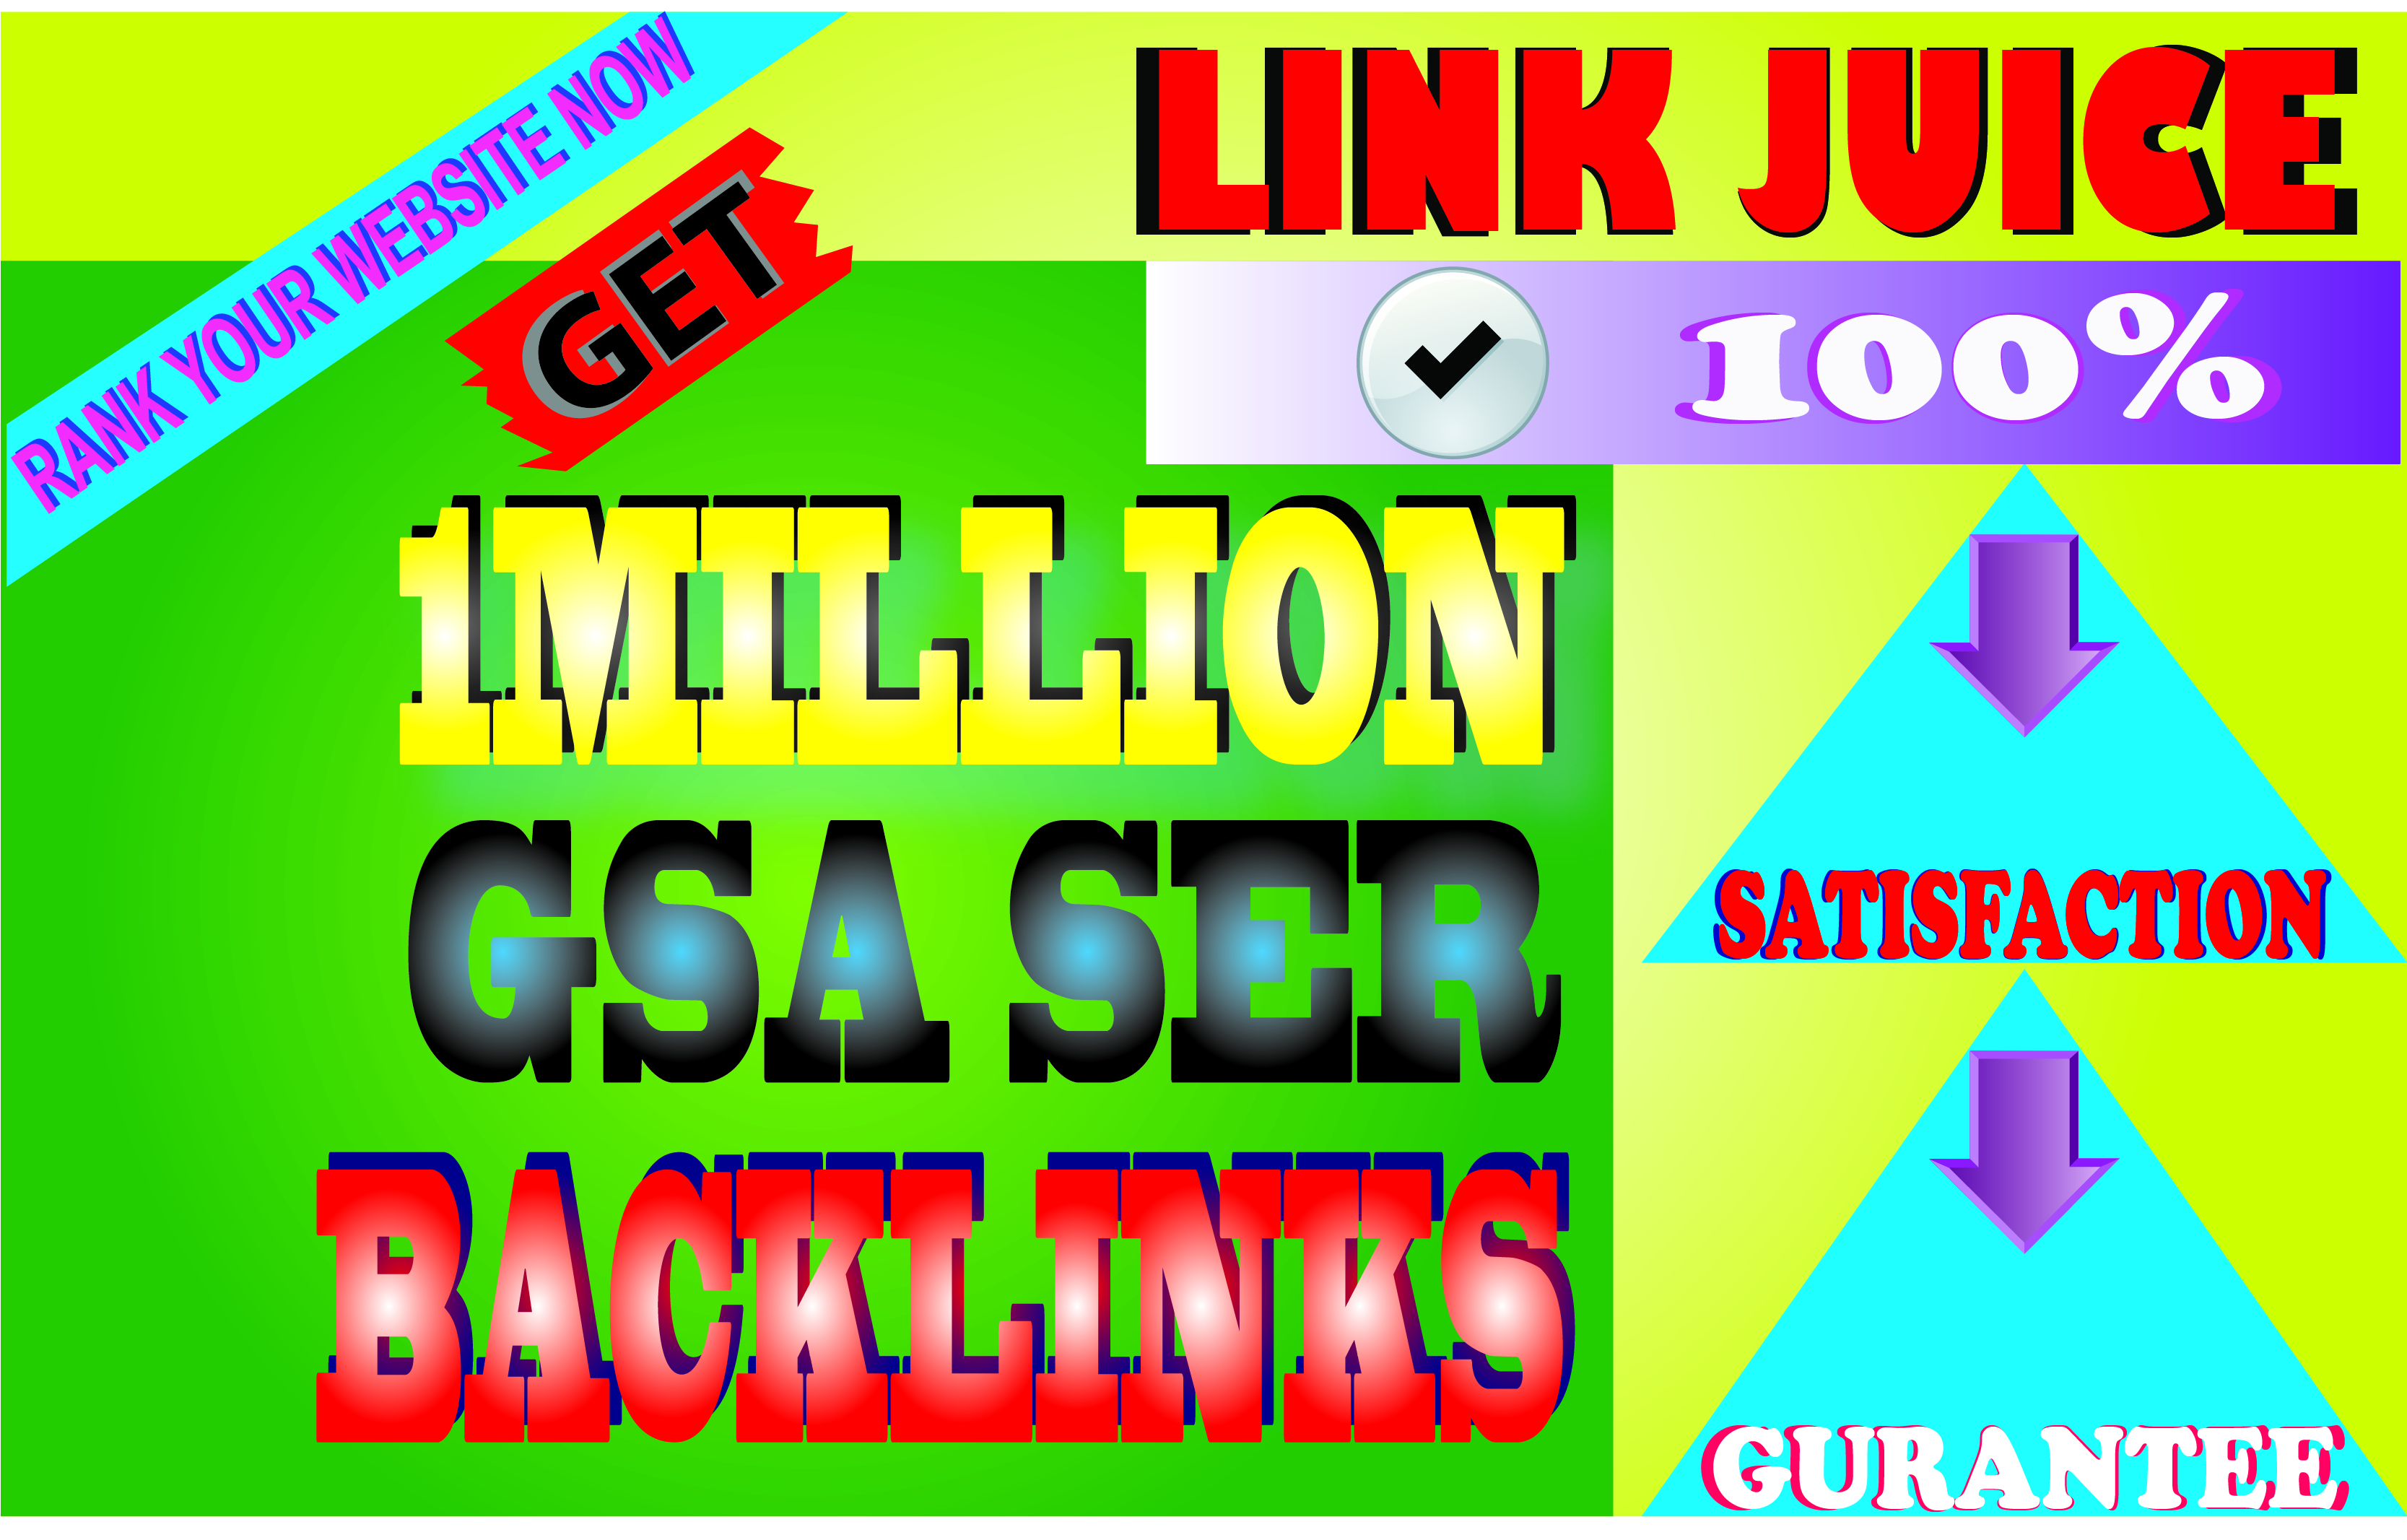 I will create 1 million gsa backlinks for increasing link juice